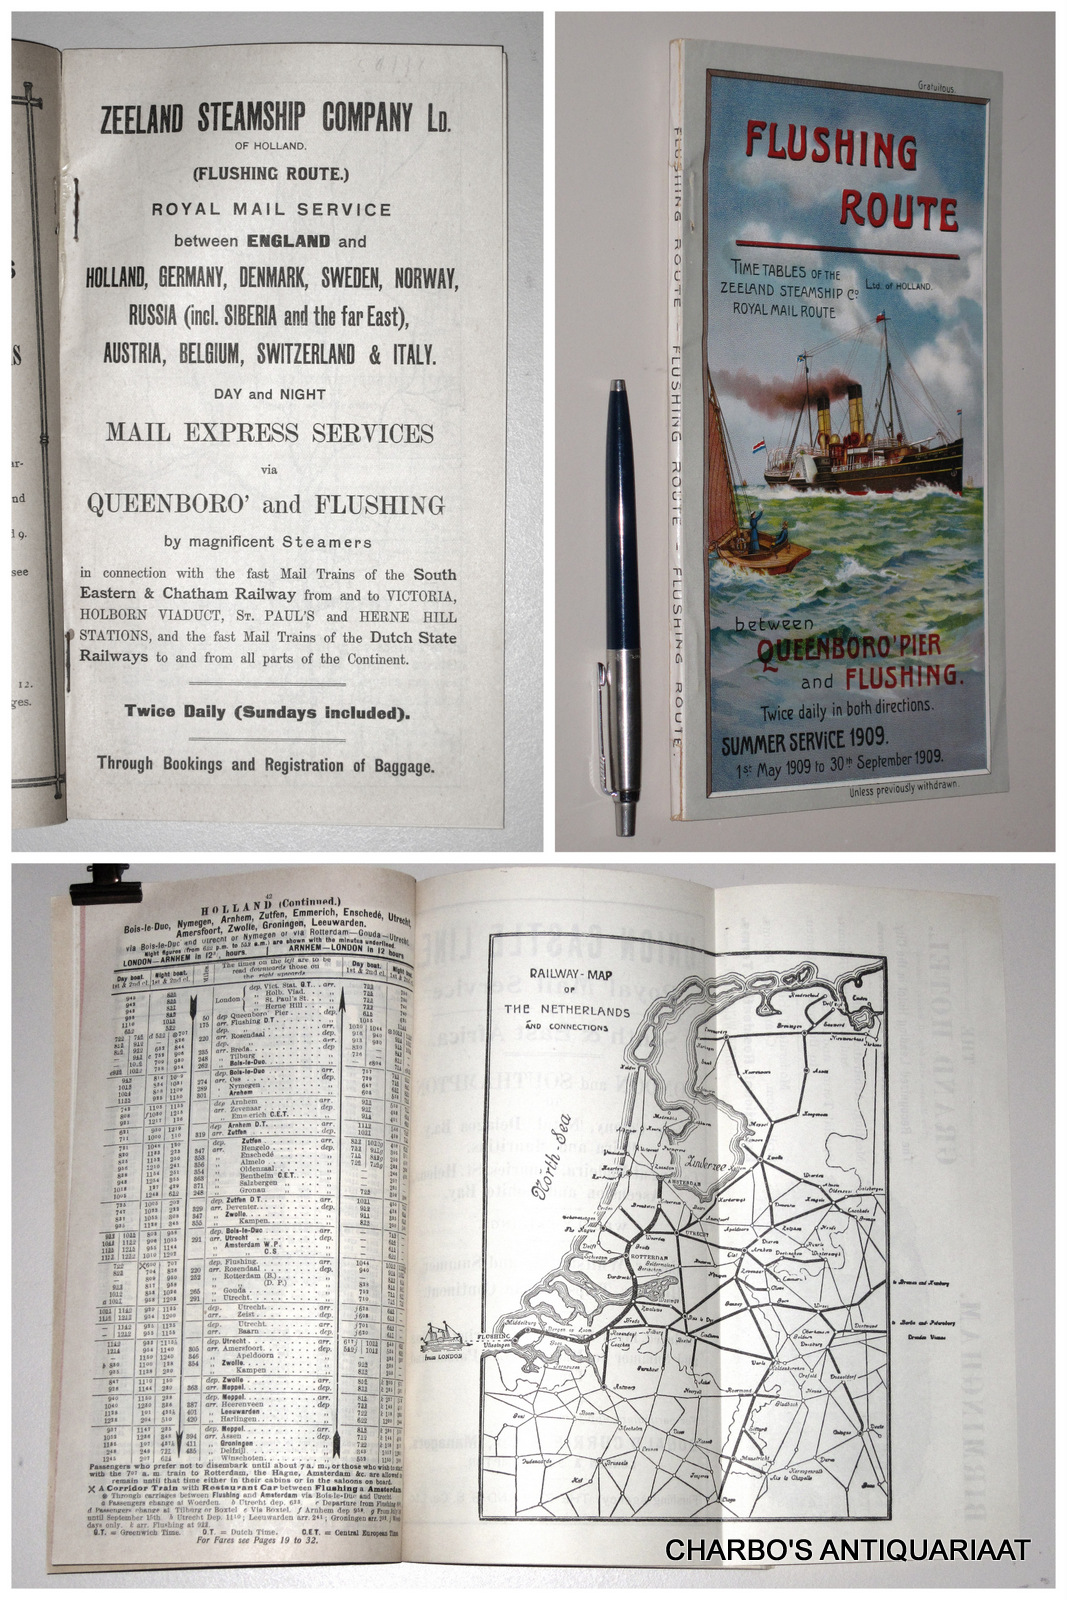 STOOMVAART MAATSCHAPPIJ ZEELAND, -  Flushing route. Time tables of the Zeeland Steamship Co. Royal mail route between Queenboro's Pier and Flushing. Summer service 1909.